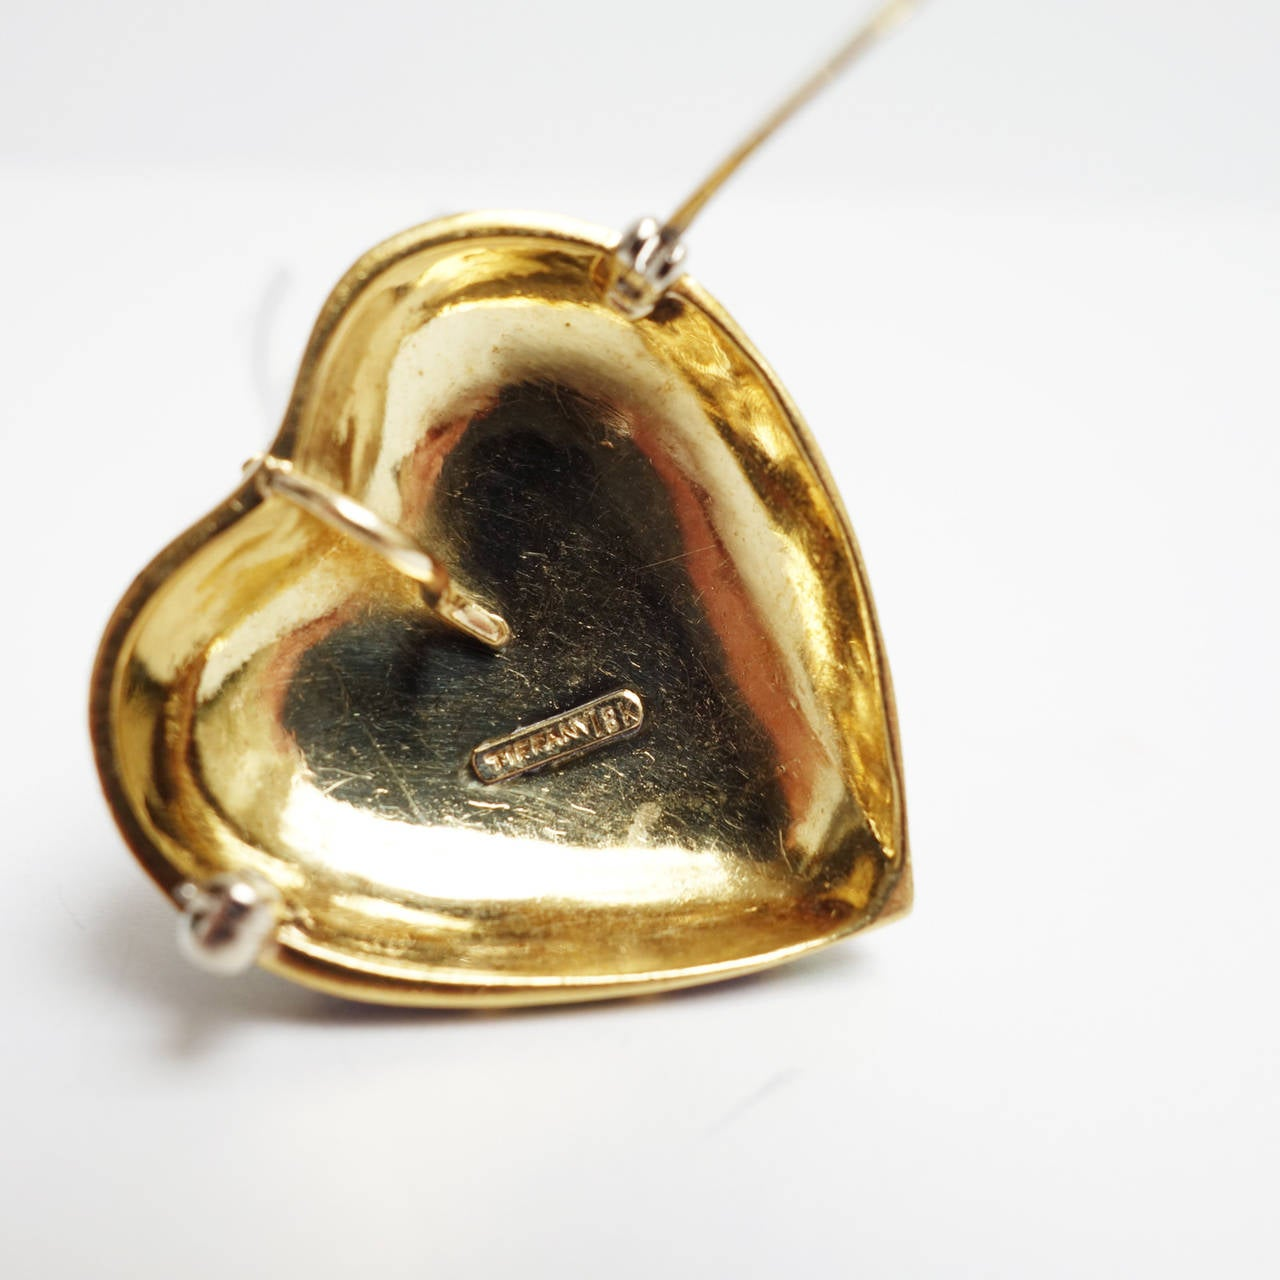 Tiffany & Co. Blue and Green Enamel Gold Heart Pin Pendant In Excellent Condition For Sale In Agoura Hills, CA